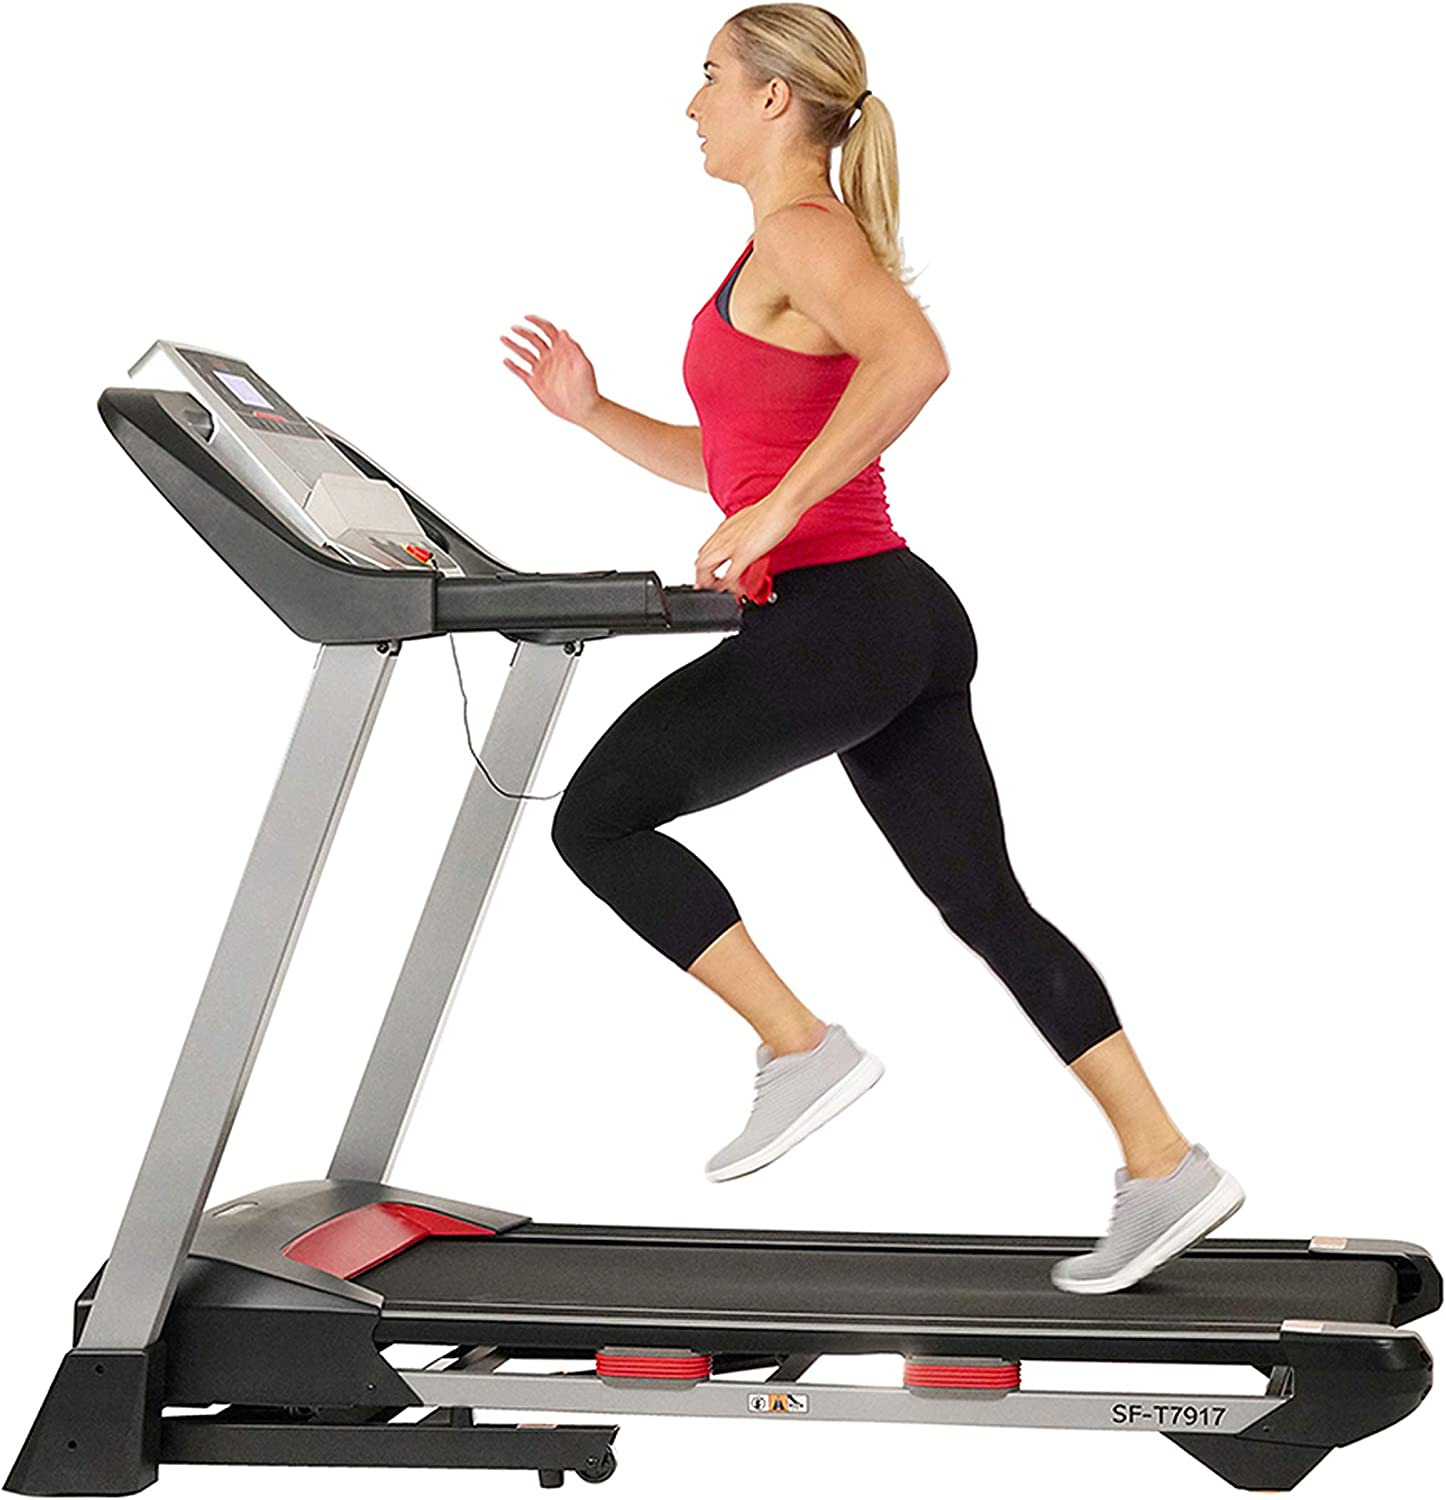 Amazon.com : Sunny Health & Fitness Electric Folding Treadmill with LCD and Pulse Monitor, 265 LB Max Weight, Tablet Holder, Bluetooth Speakers and USB Charging - SF-T7917, Black : Sports & Outdoors